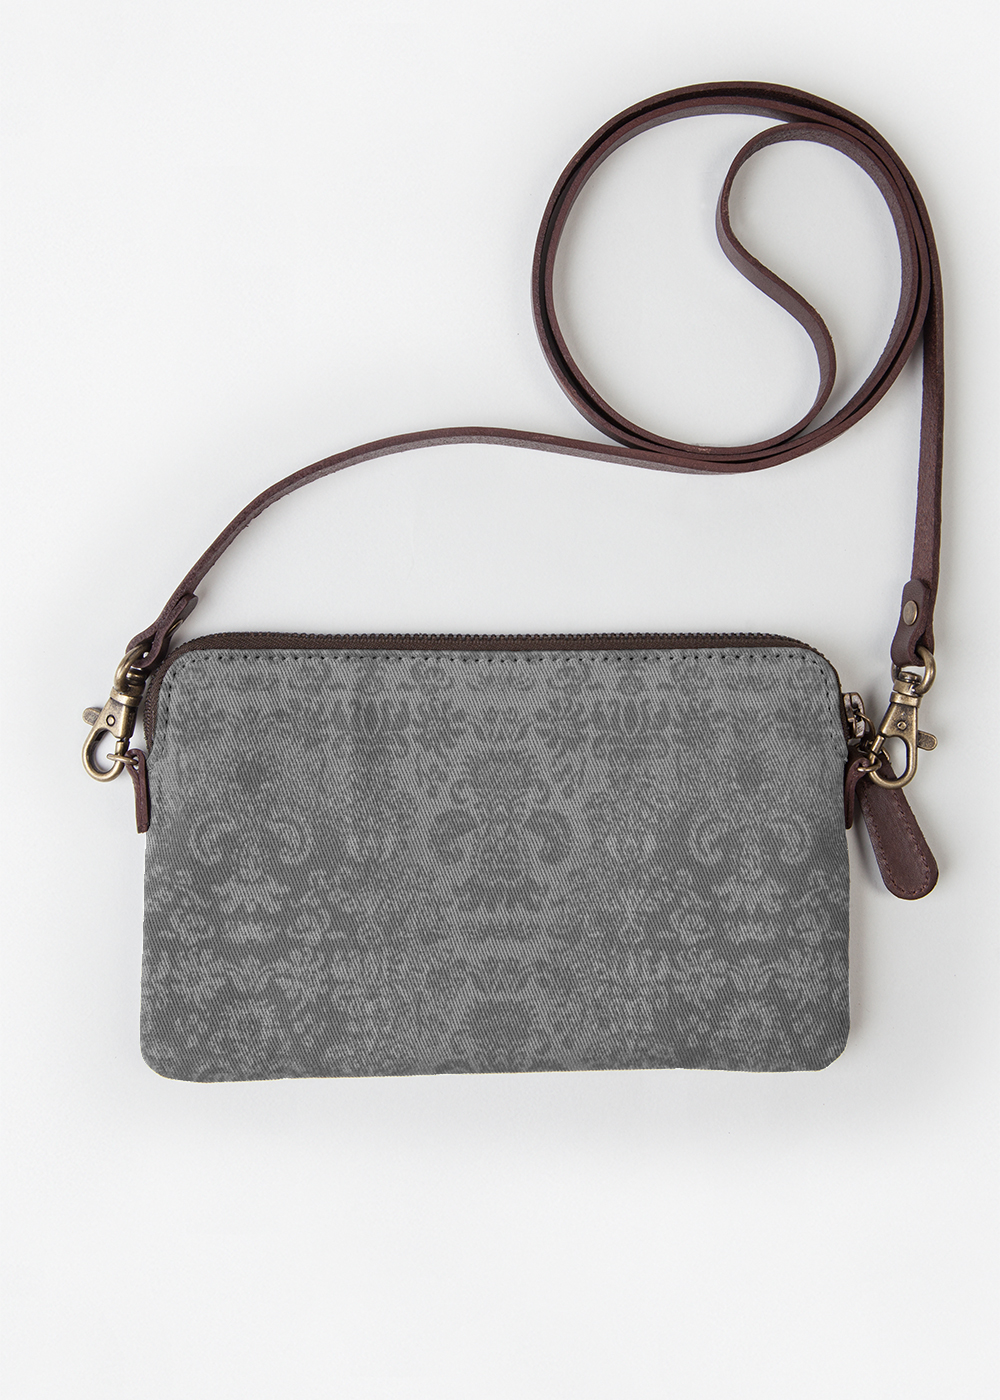 VIDA Statement Bag - CLOUD 9 @ TyJari by VIDA jI8dmOZ